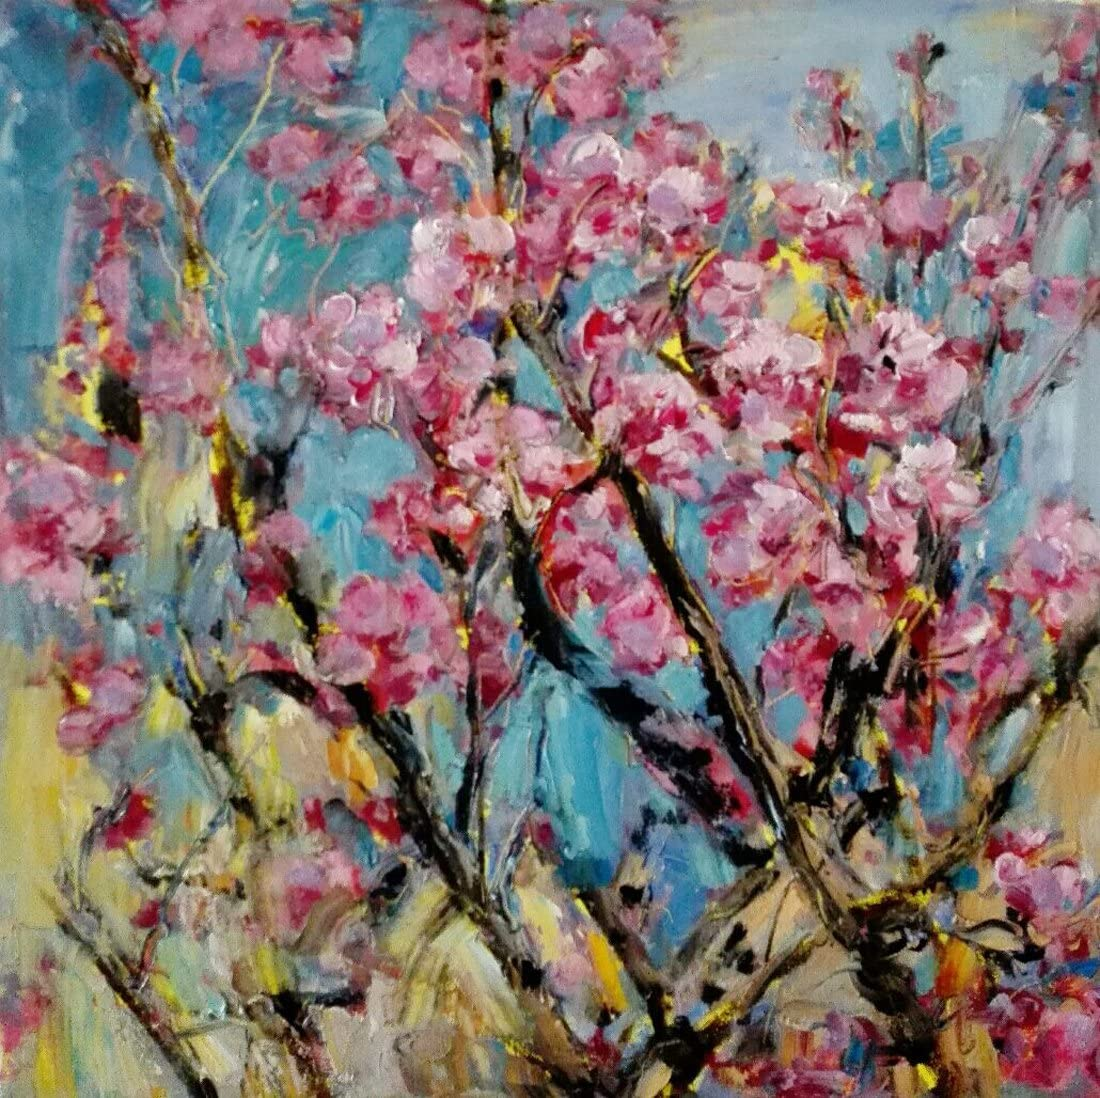 Peachblossom By Original Artist - Chen DeJun. Museum Quality Oil Painting. (Unframed and Unstretched).Painting Size 48x48 In.